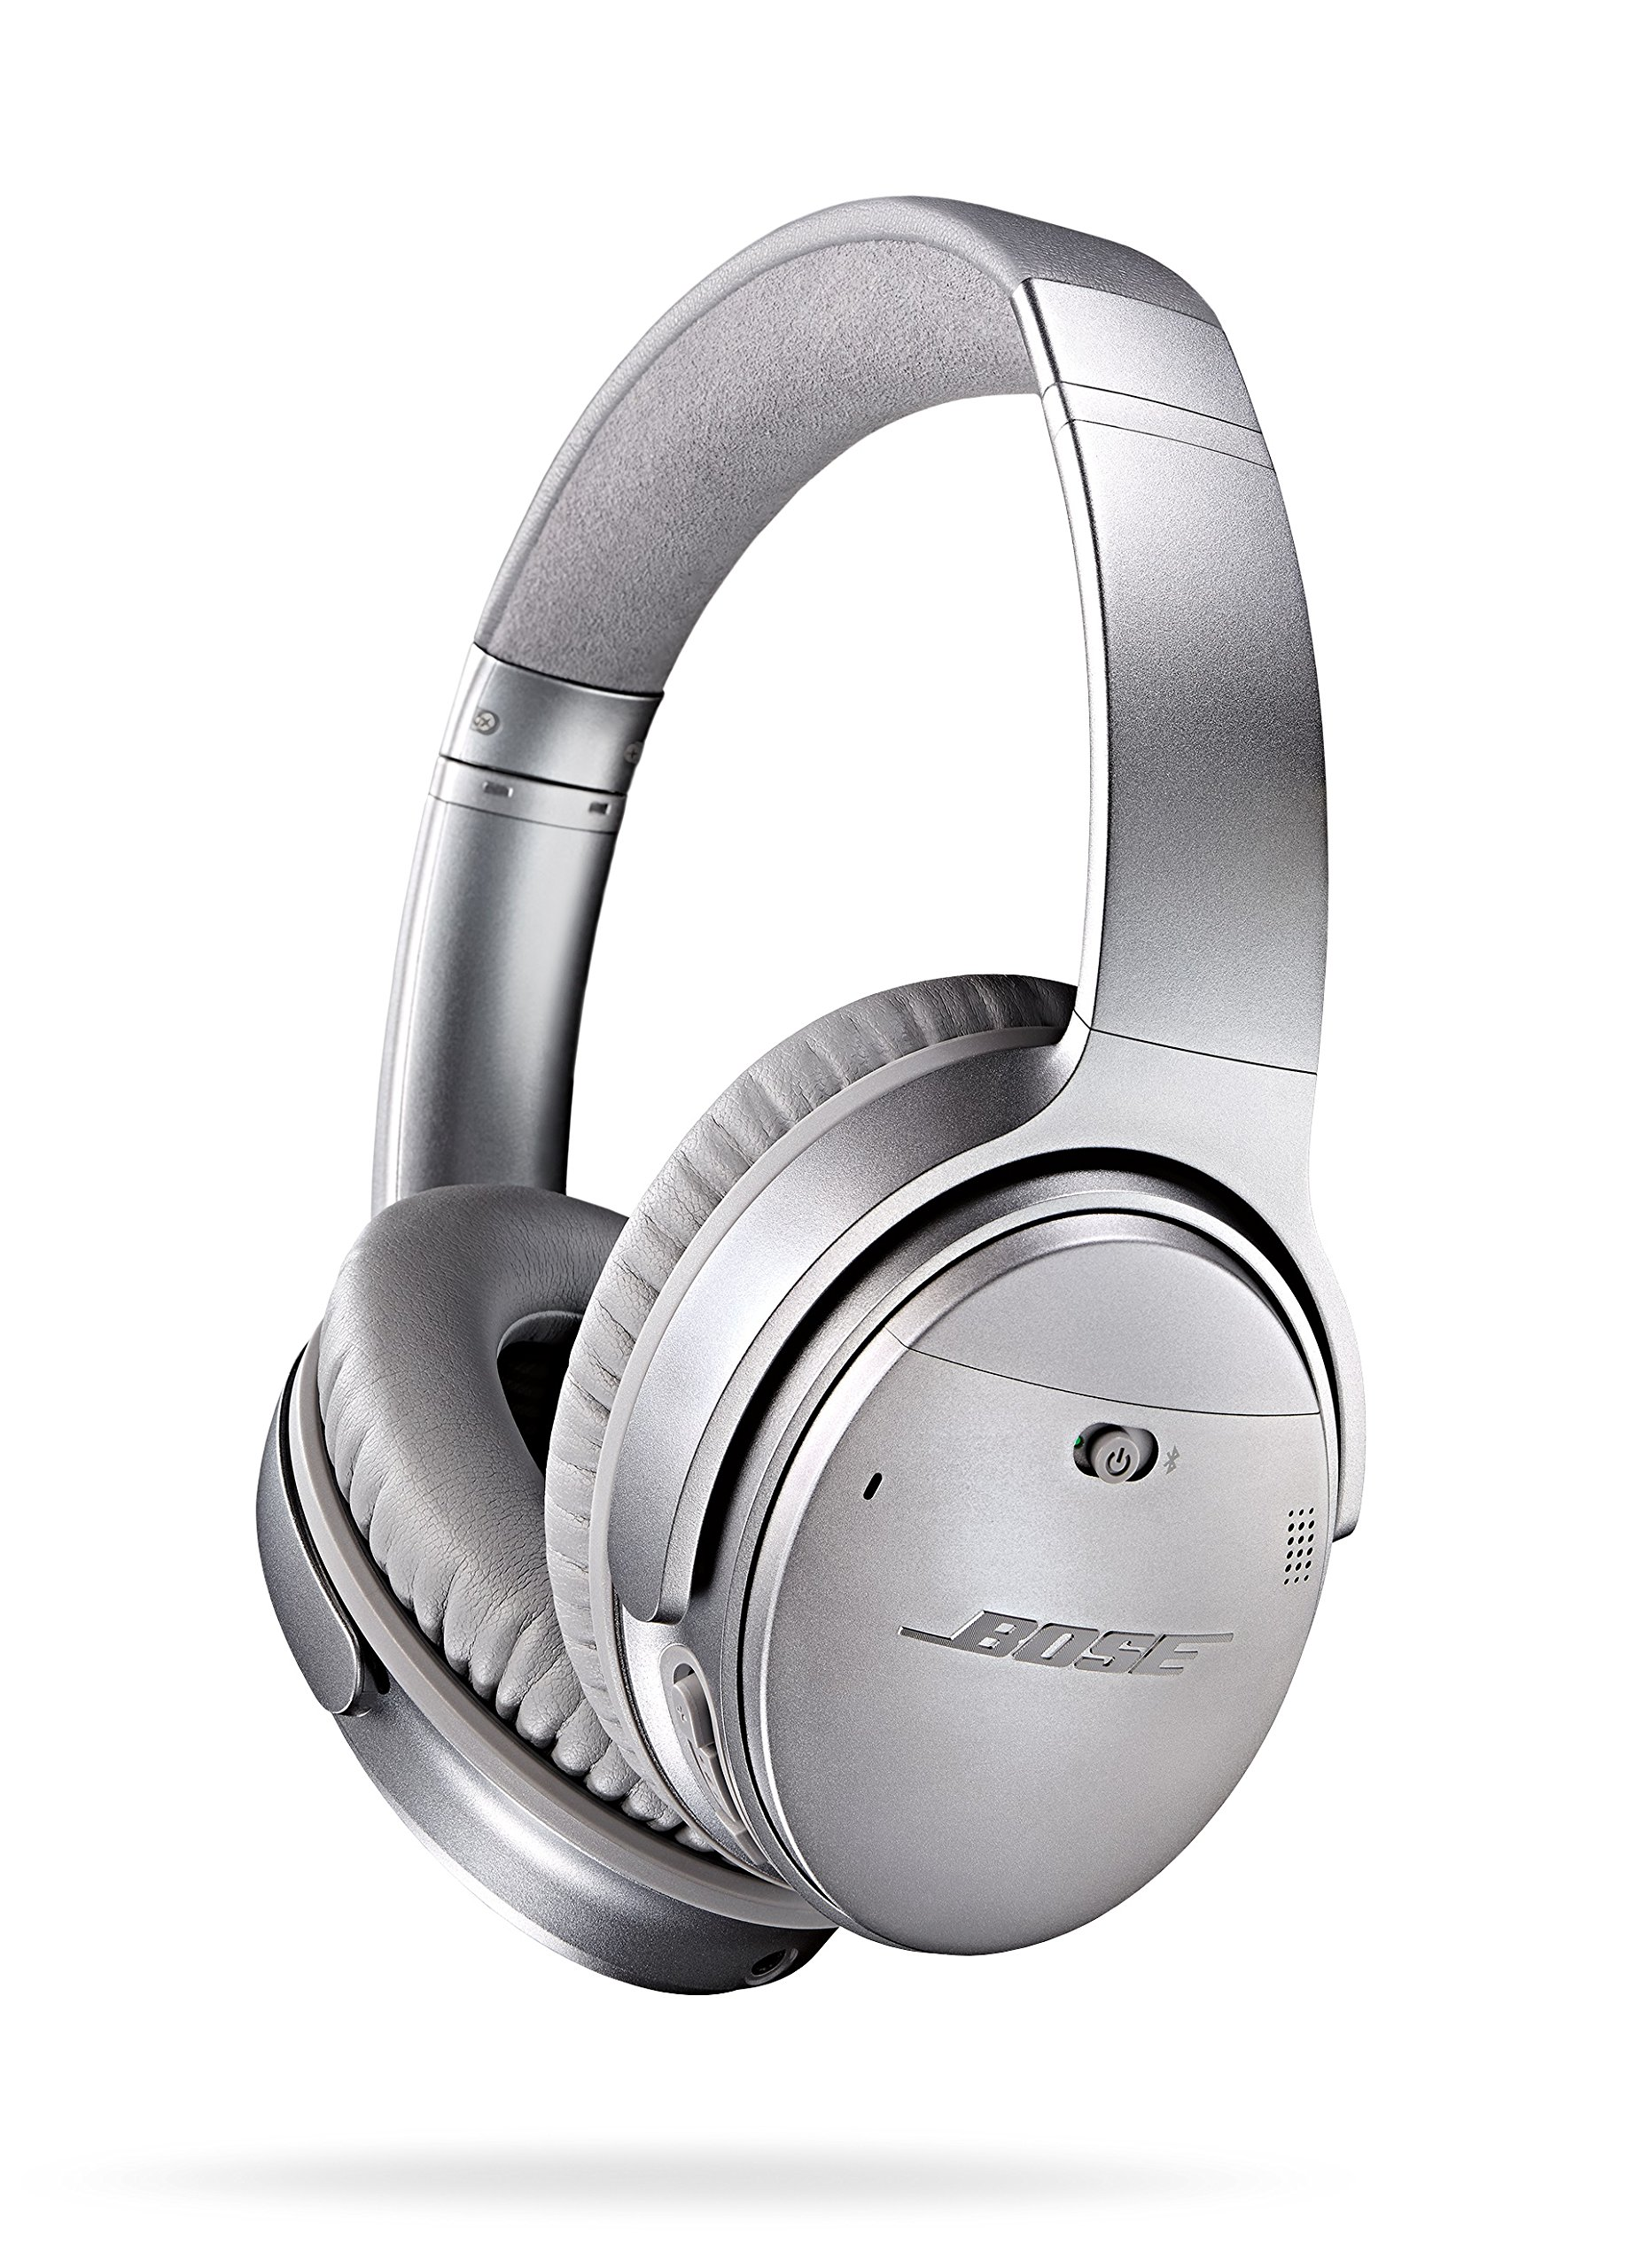 Bose QuietComfort 35 (Series I) Wireless Headphones, Noise Cancelling - Silver by Bose